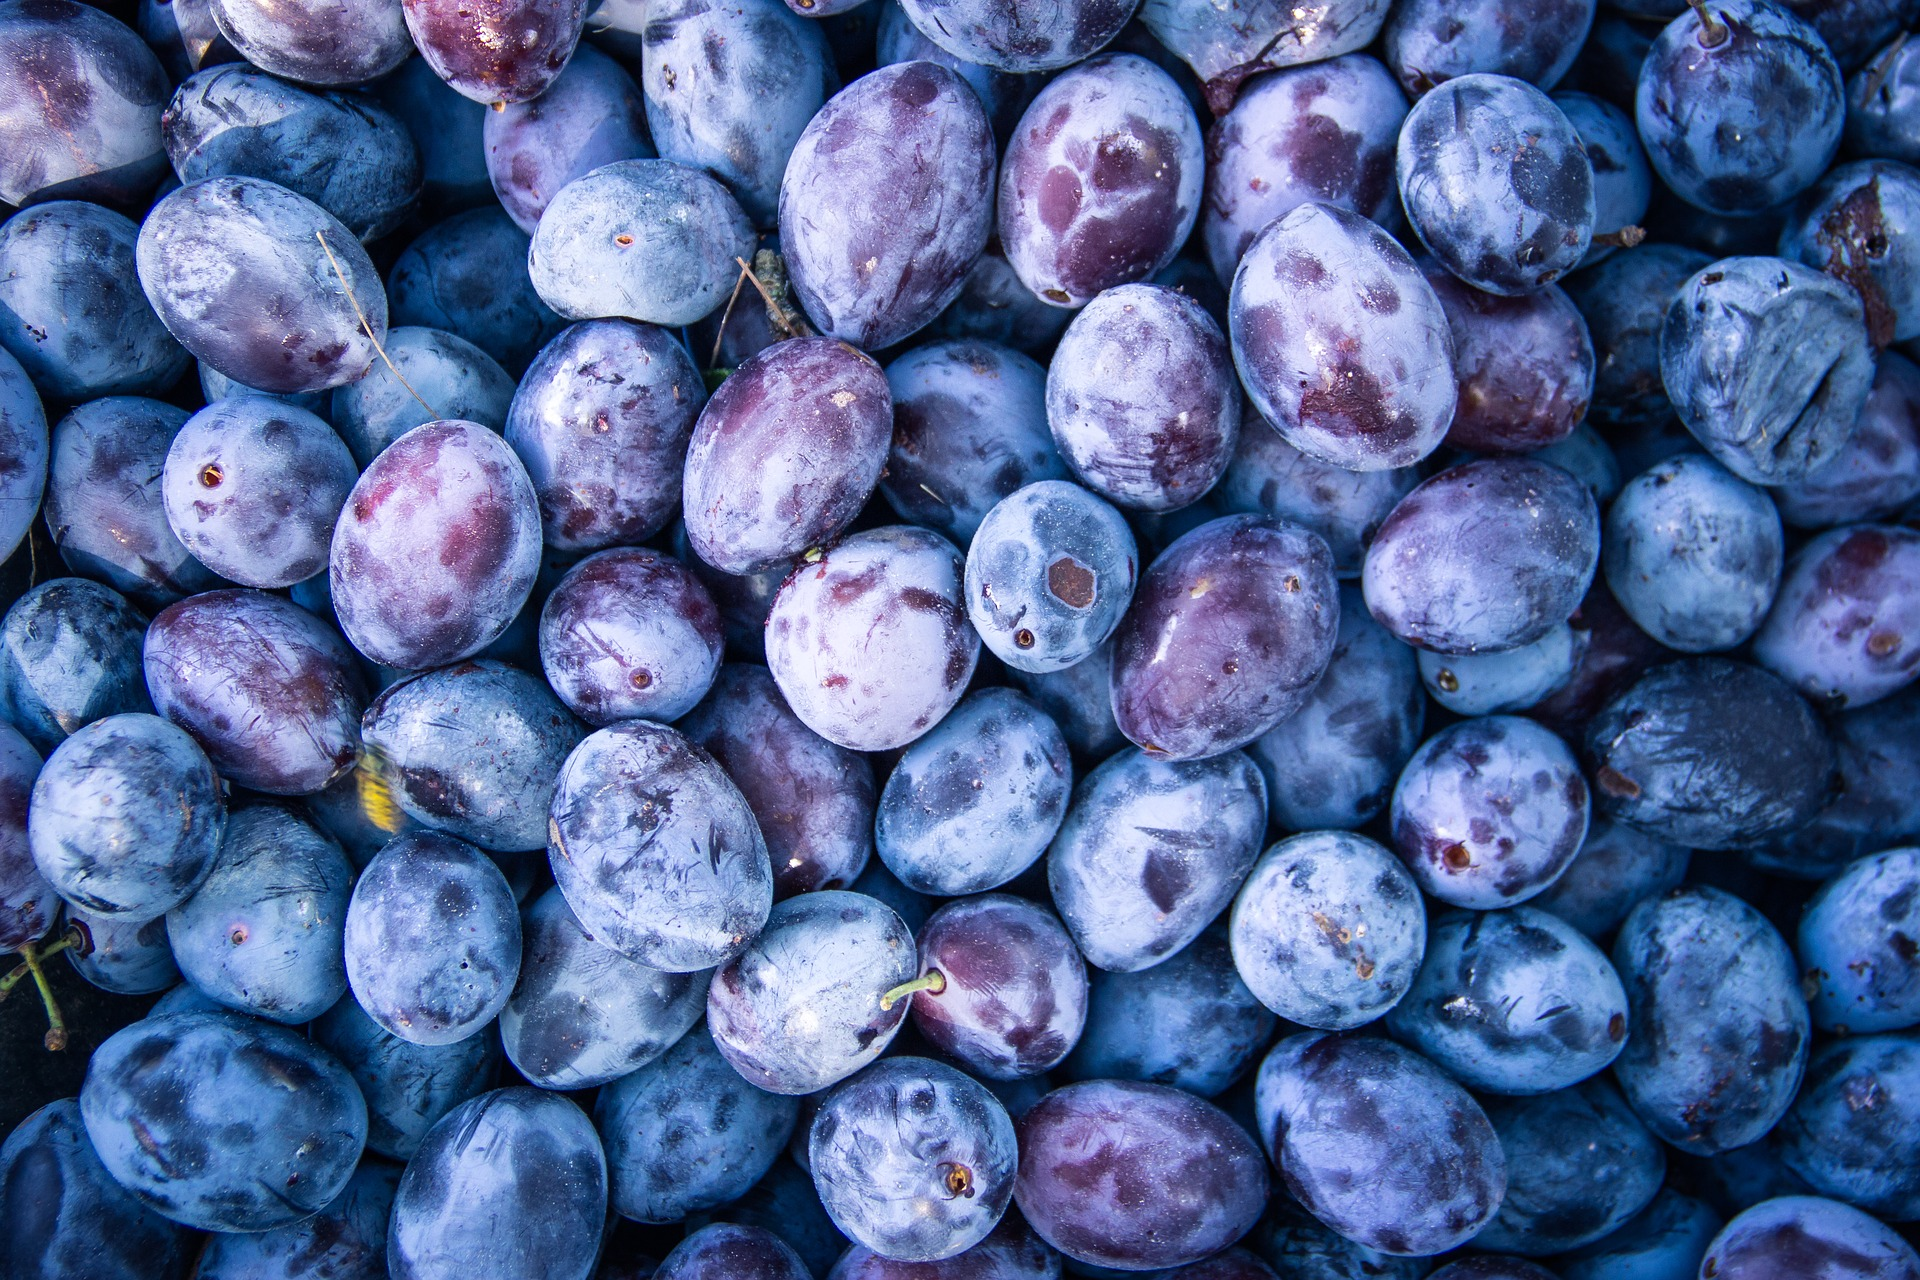 A Simple Method for Pitting Plums Faster